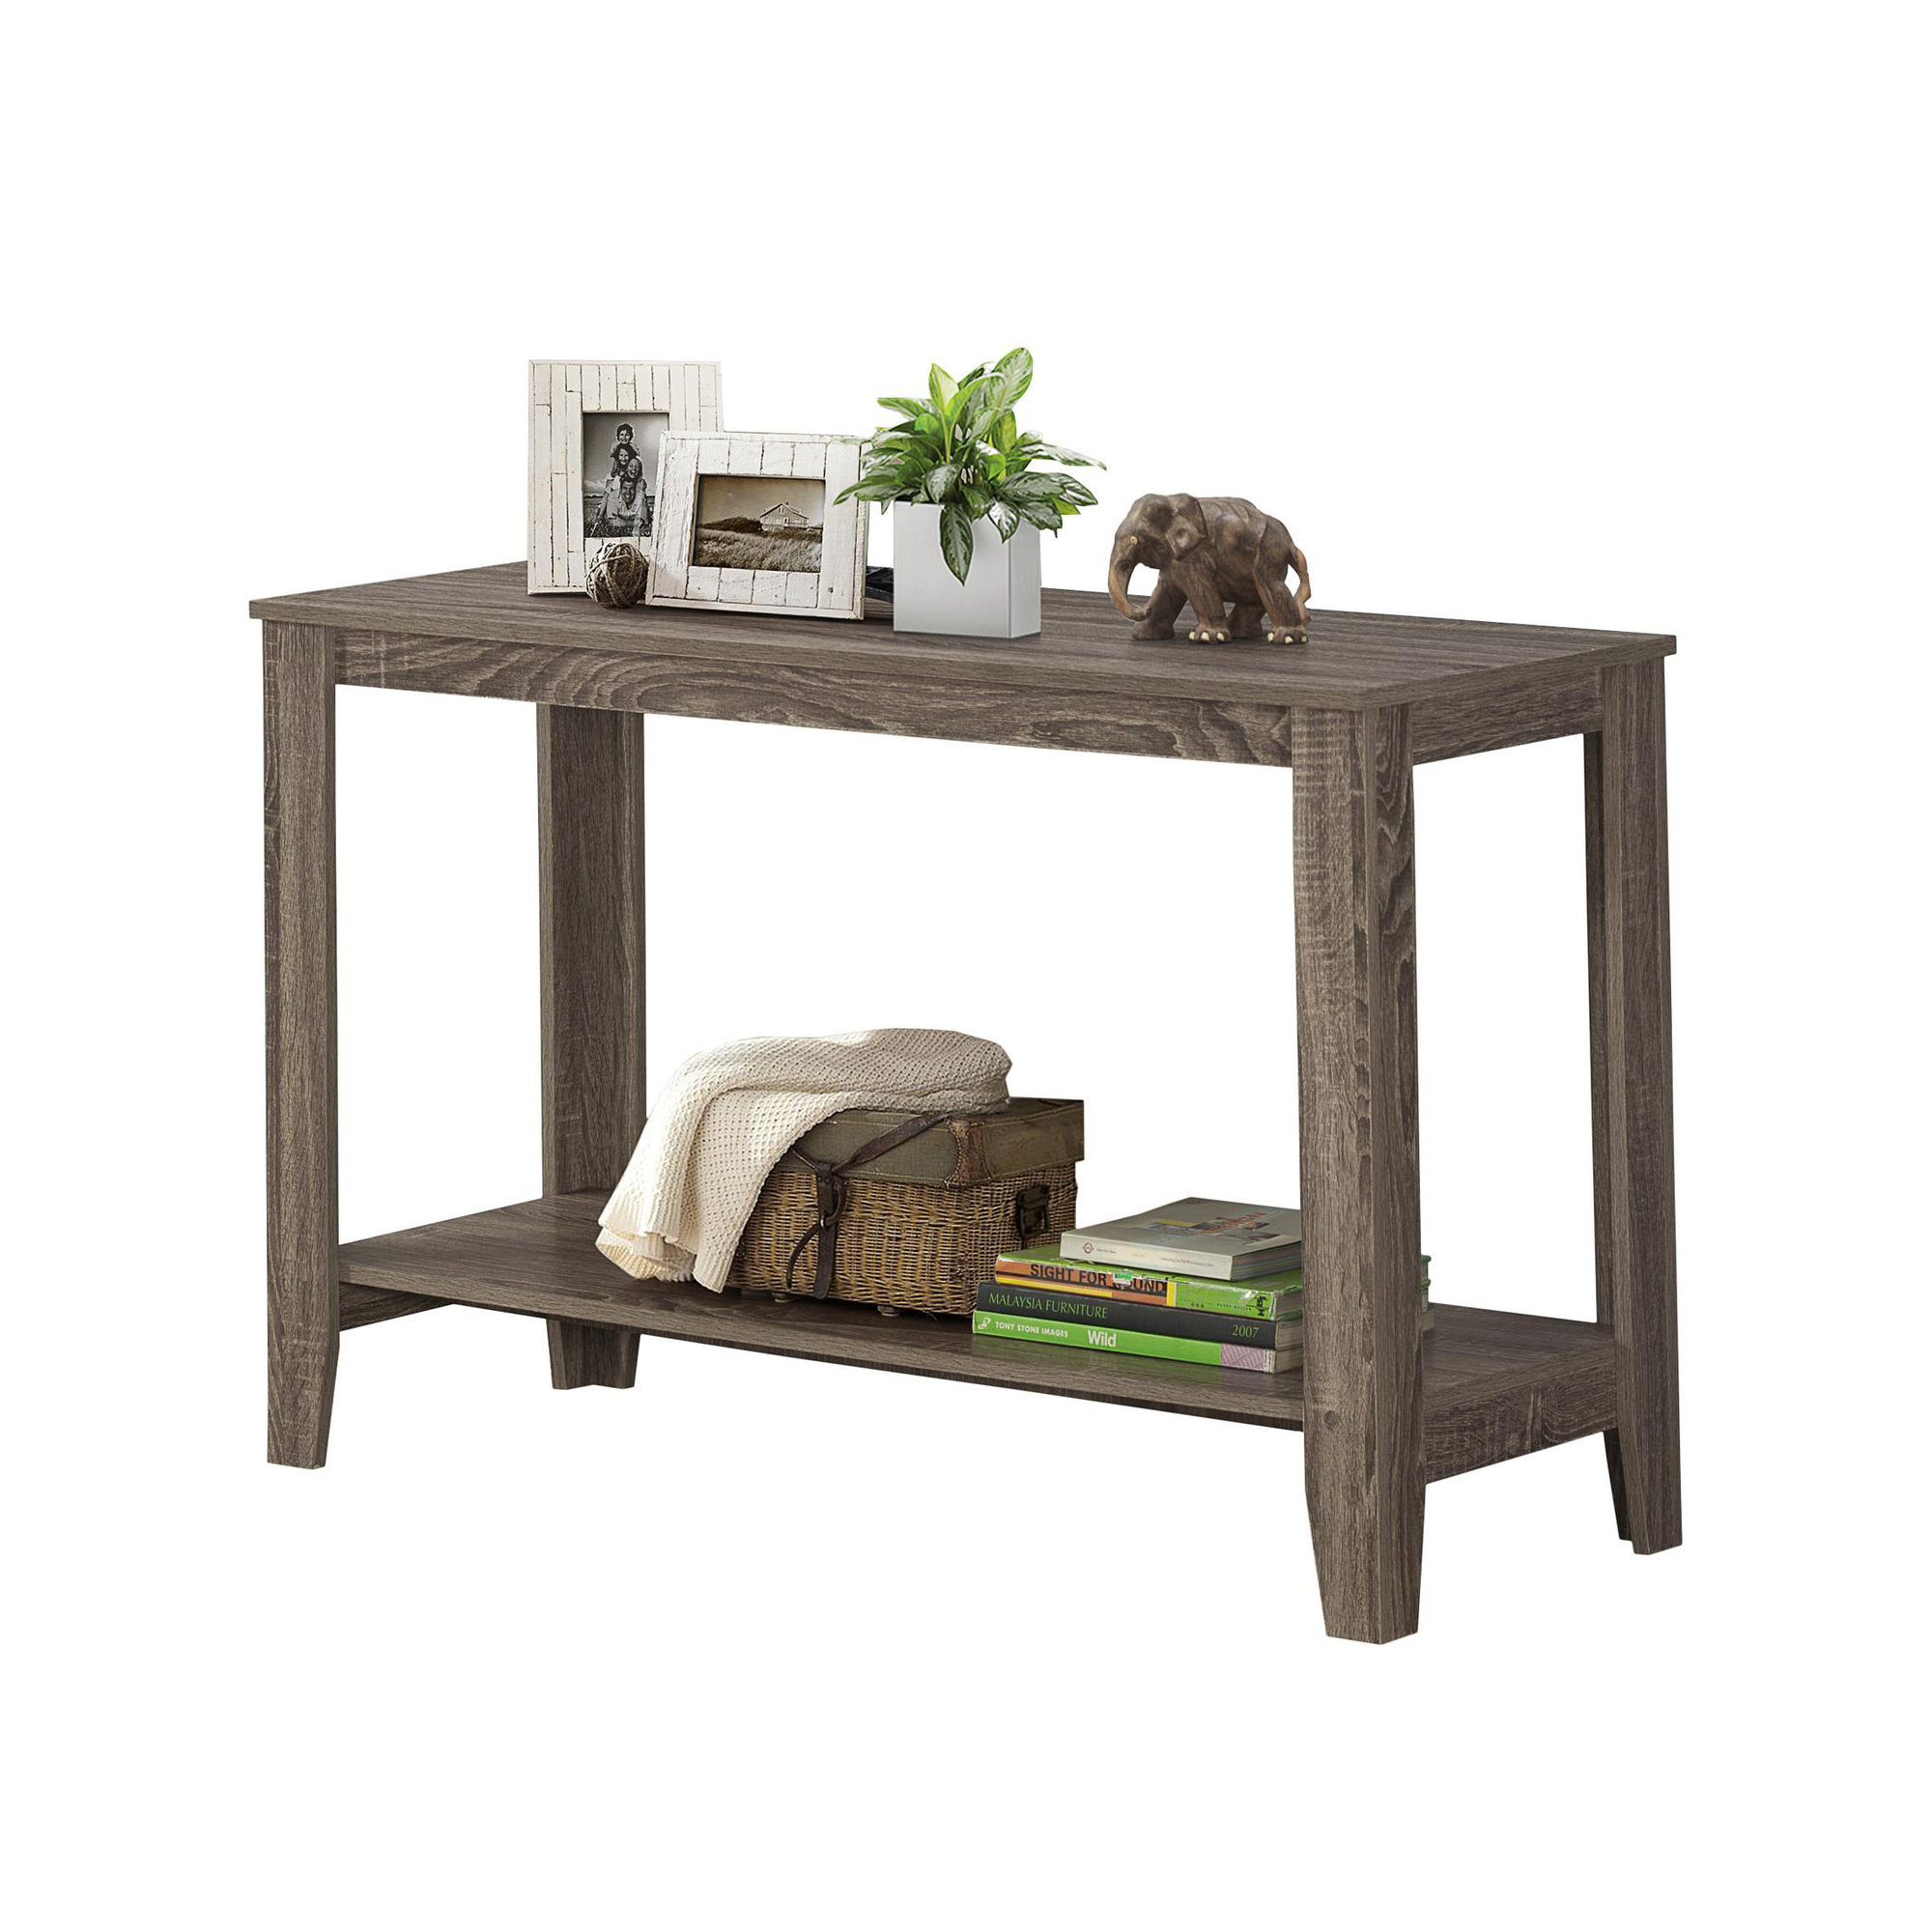 Outstanding Details About Monarch Specialties I 7915S Dark Taupe 44W Particle Board Console Sofa Table Ibusinesslaw Wood Chair Design Ideas Ibusinesslaworg